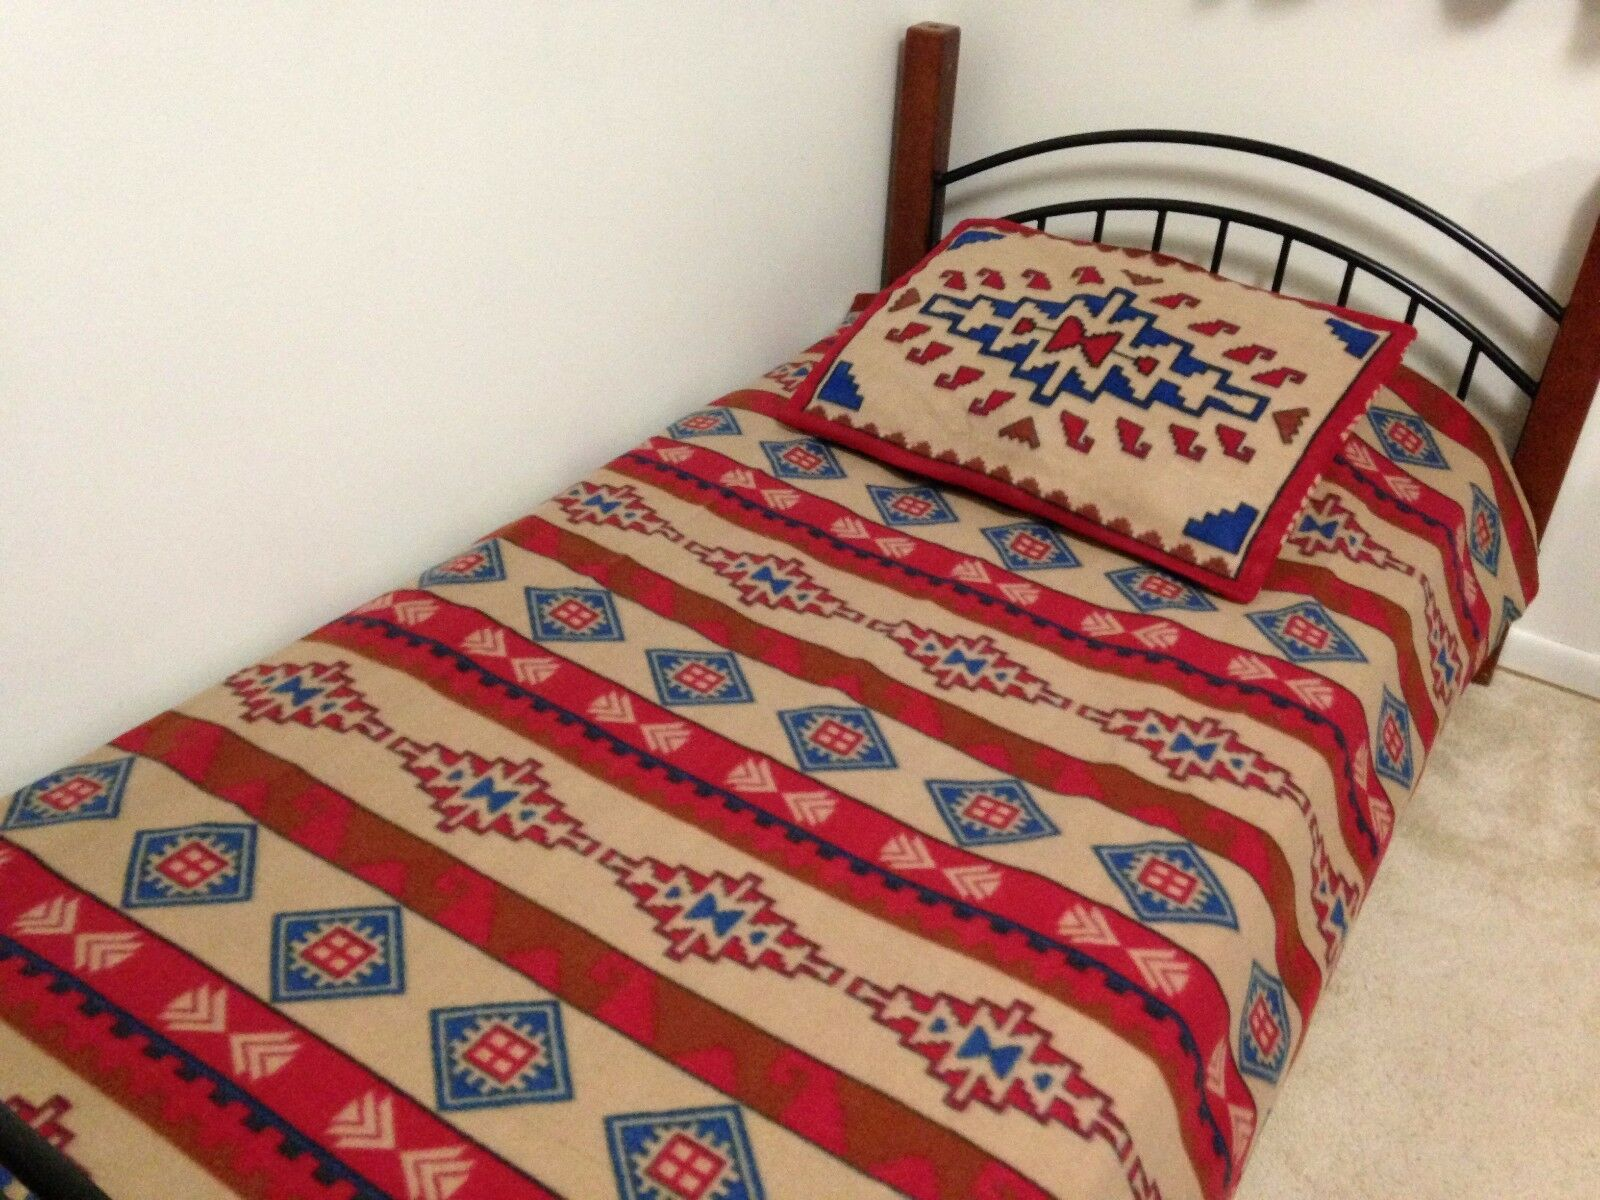 Southwest Santa Fe Lightweight Fleece Coverlet Bed Cover Blanket Sham Set Decor